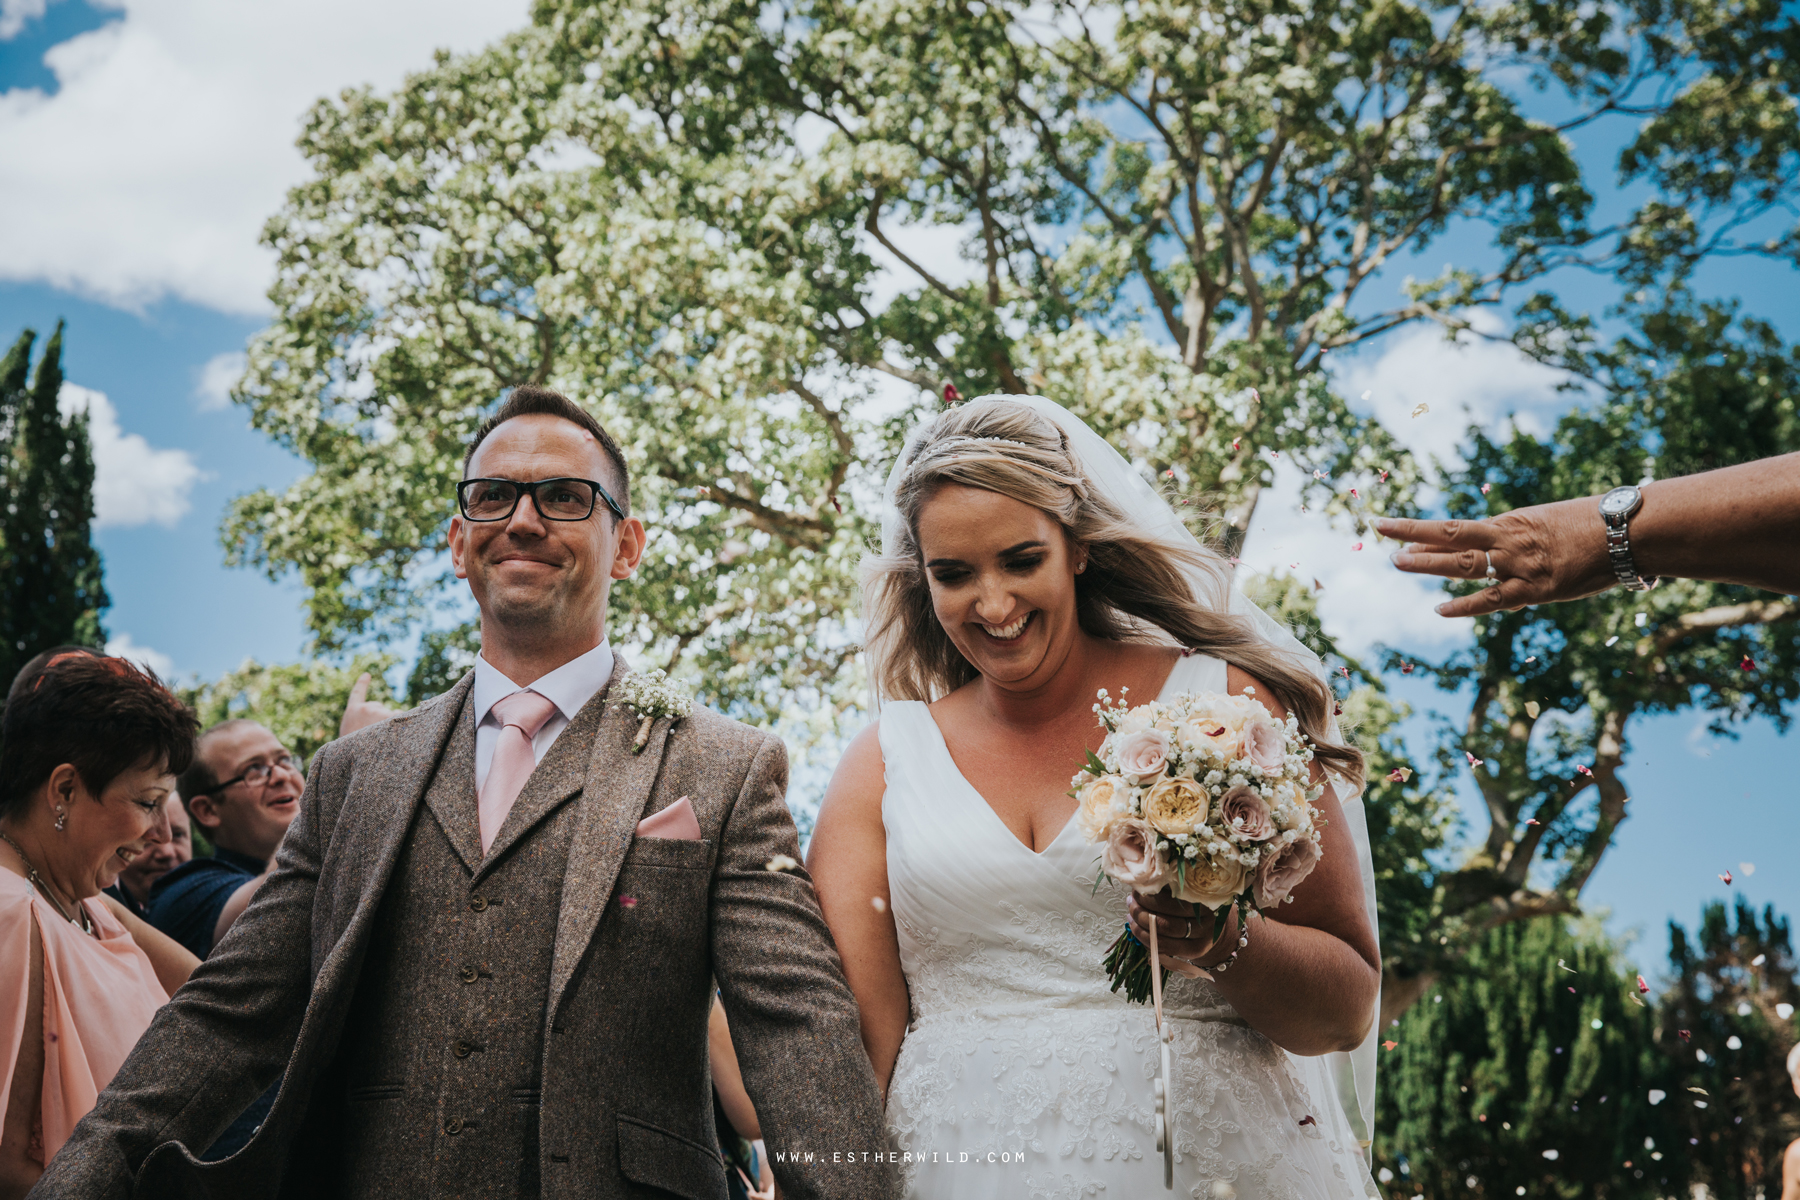 Swaffham_Wedding_Castle_Acre_Norfolk_Esther_Wild_Photographer_Wedding_Photography_3R8A1013.jpg